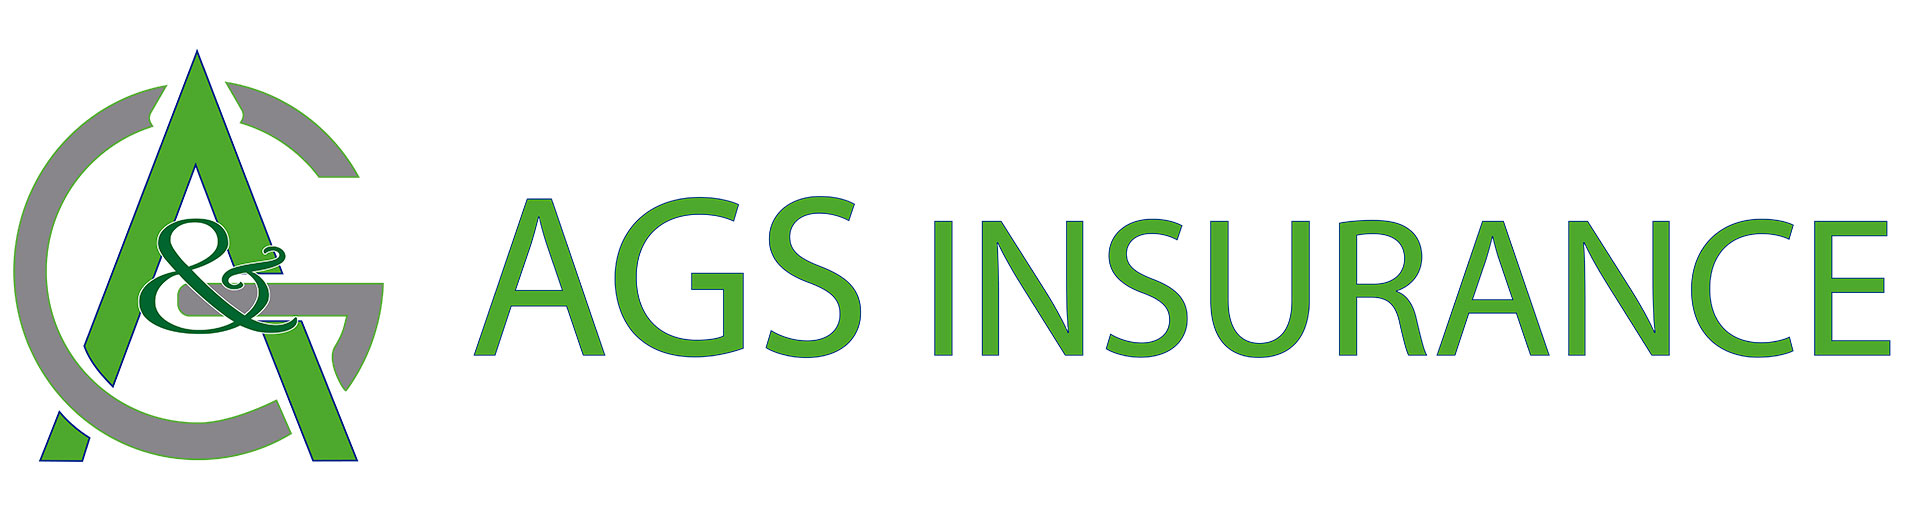 AGS INSURANCE